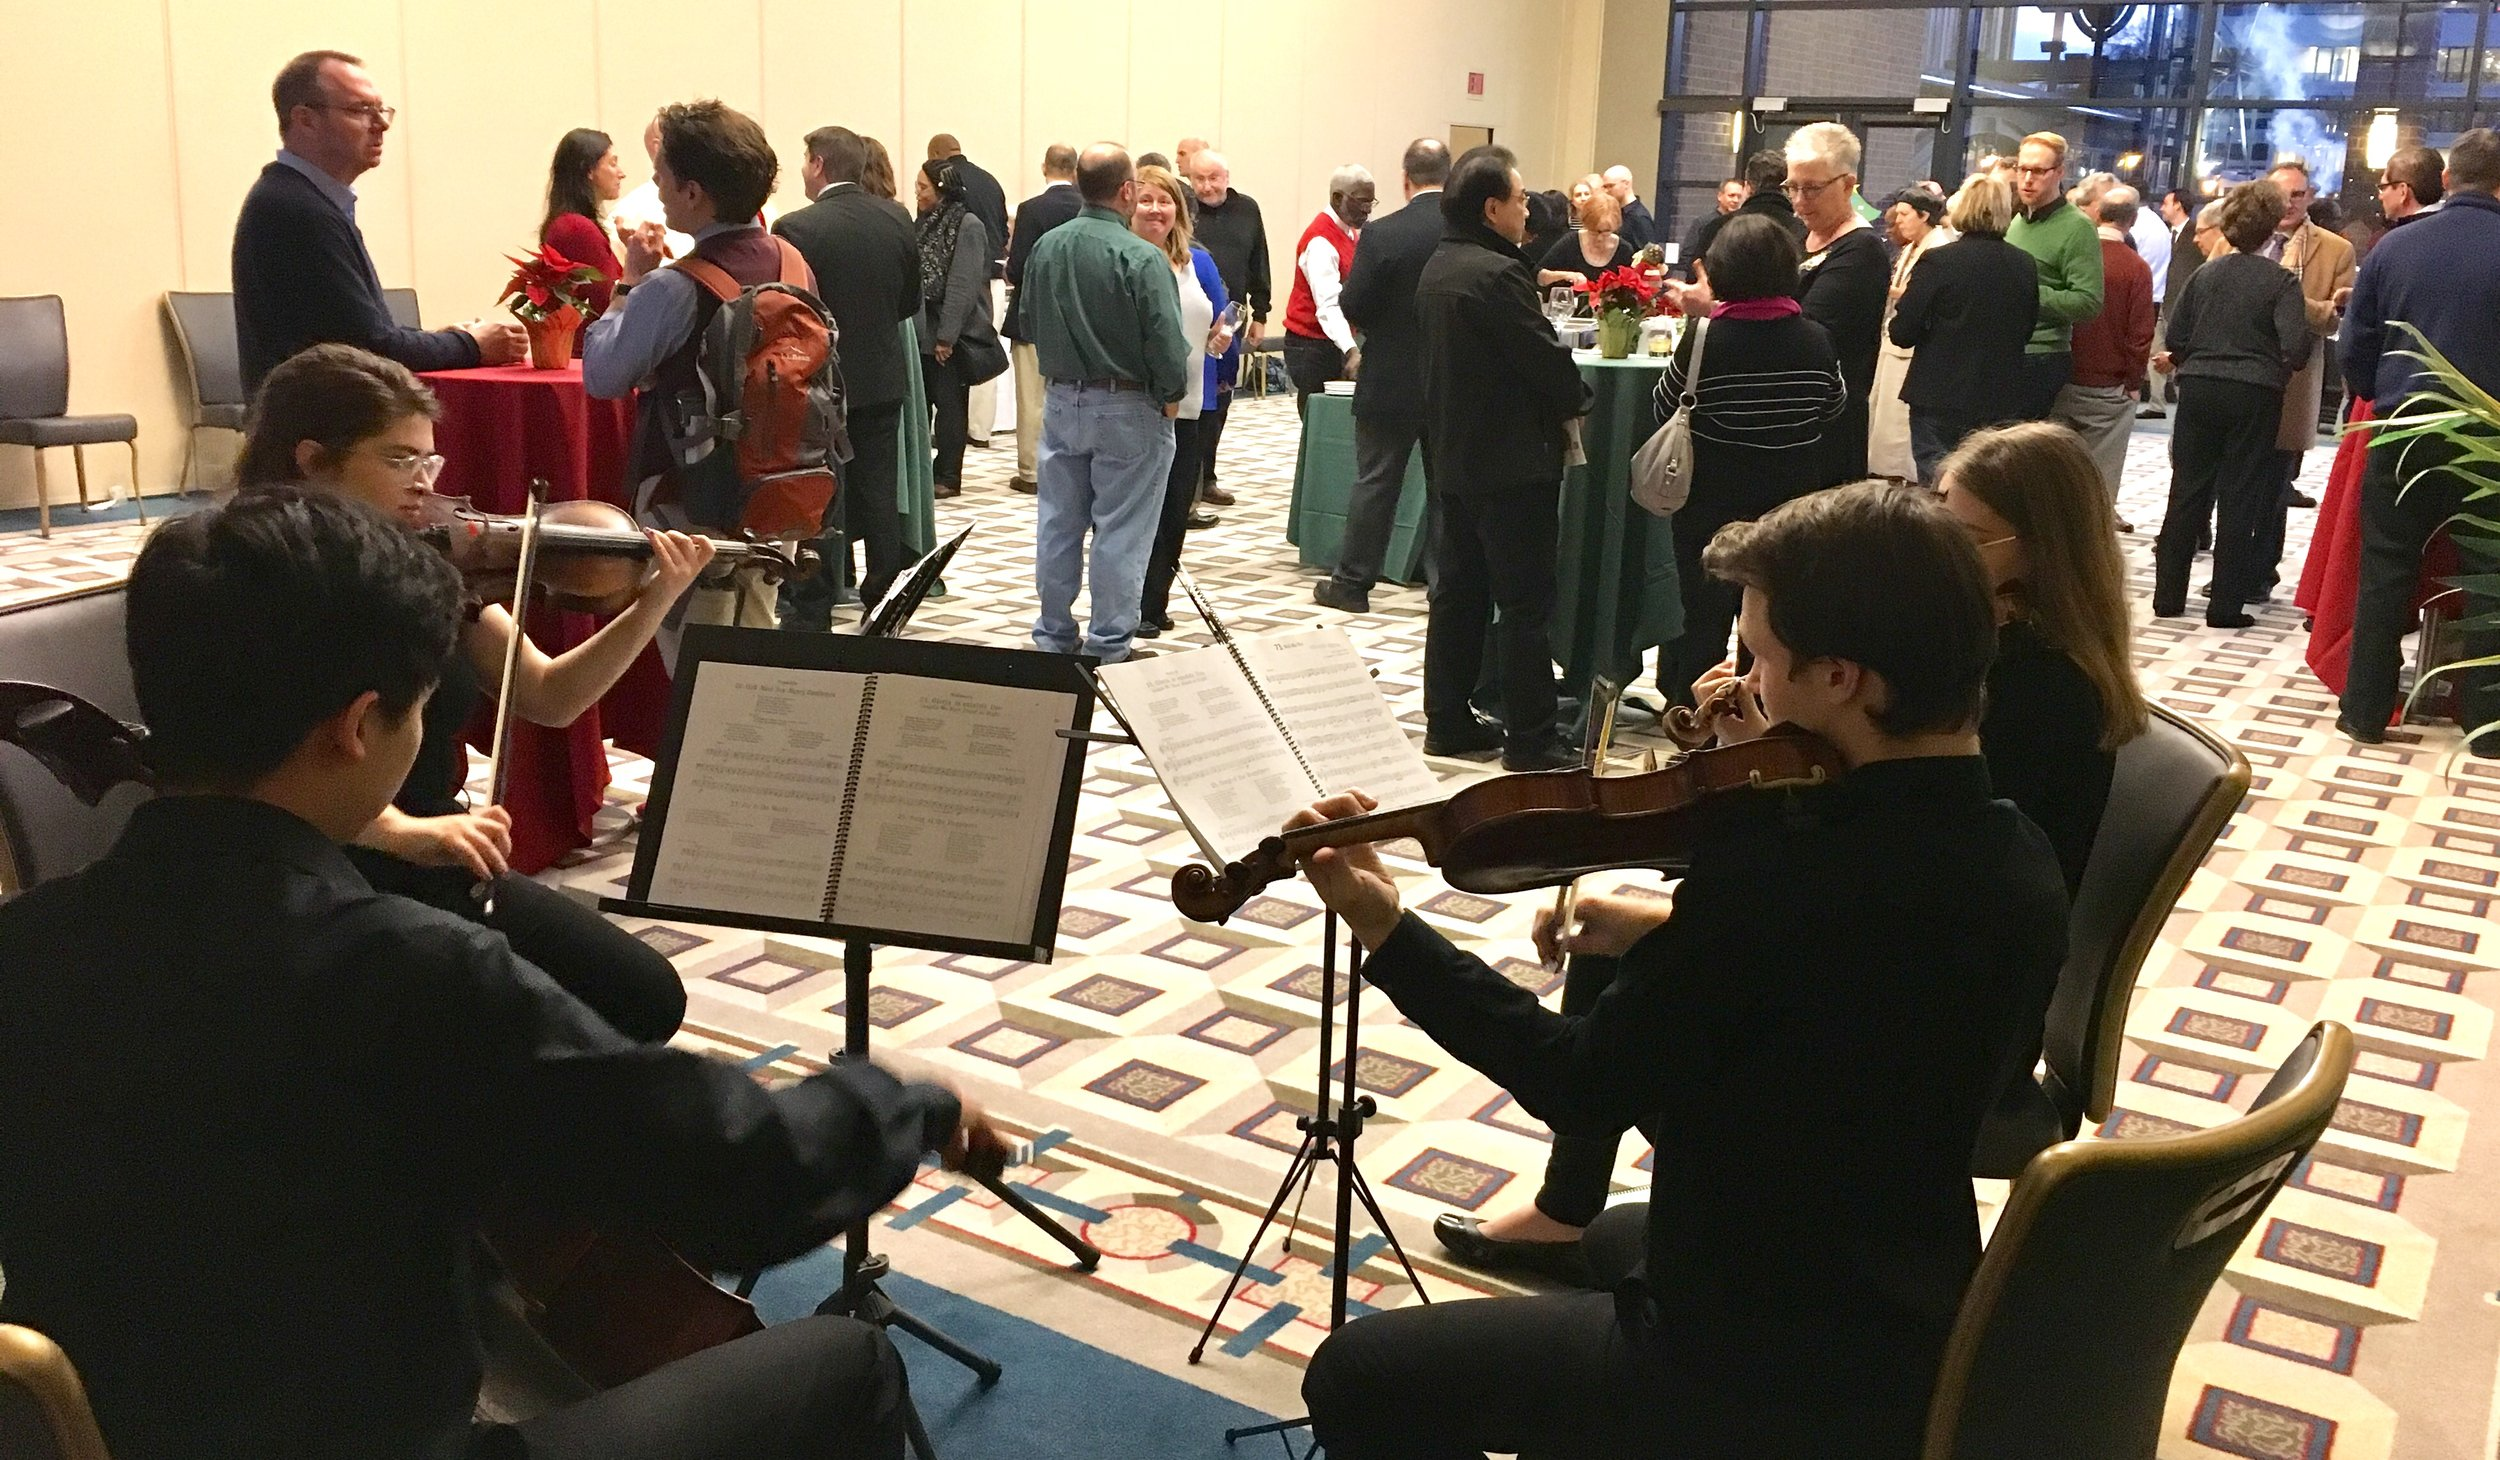 Duquesne University Faculty Party - Wednesday, December 5, 2018 - Artemis Quartet - Ballroom at Duquesne UniversityPittsburgh Youth Symphony members Nora, Ji-Yool, Felix, and Chloe performed at a faculty gathering at Duquesne University, invited by the McAnulty College and Graduate School of Liberal Arts